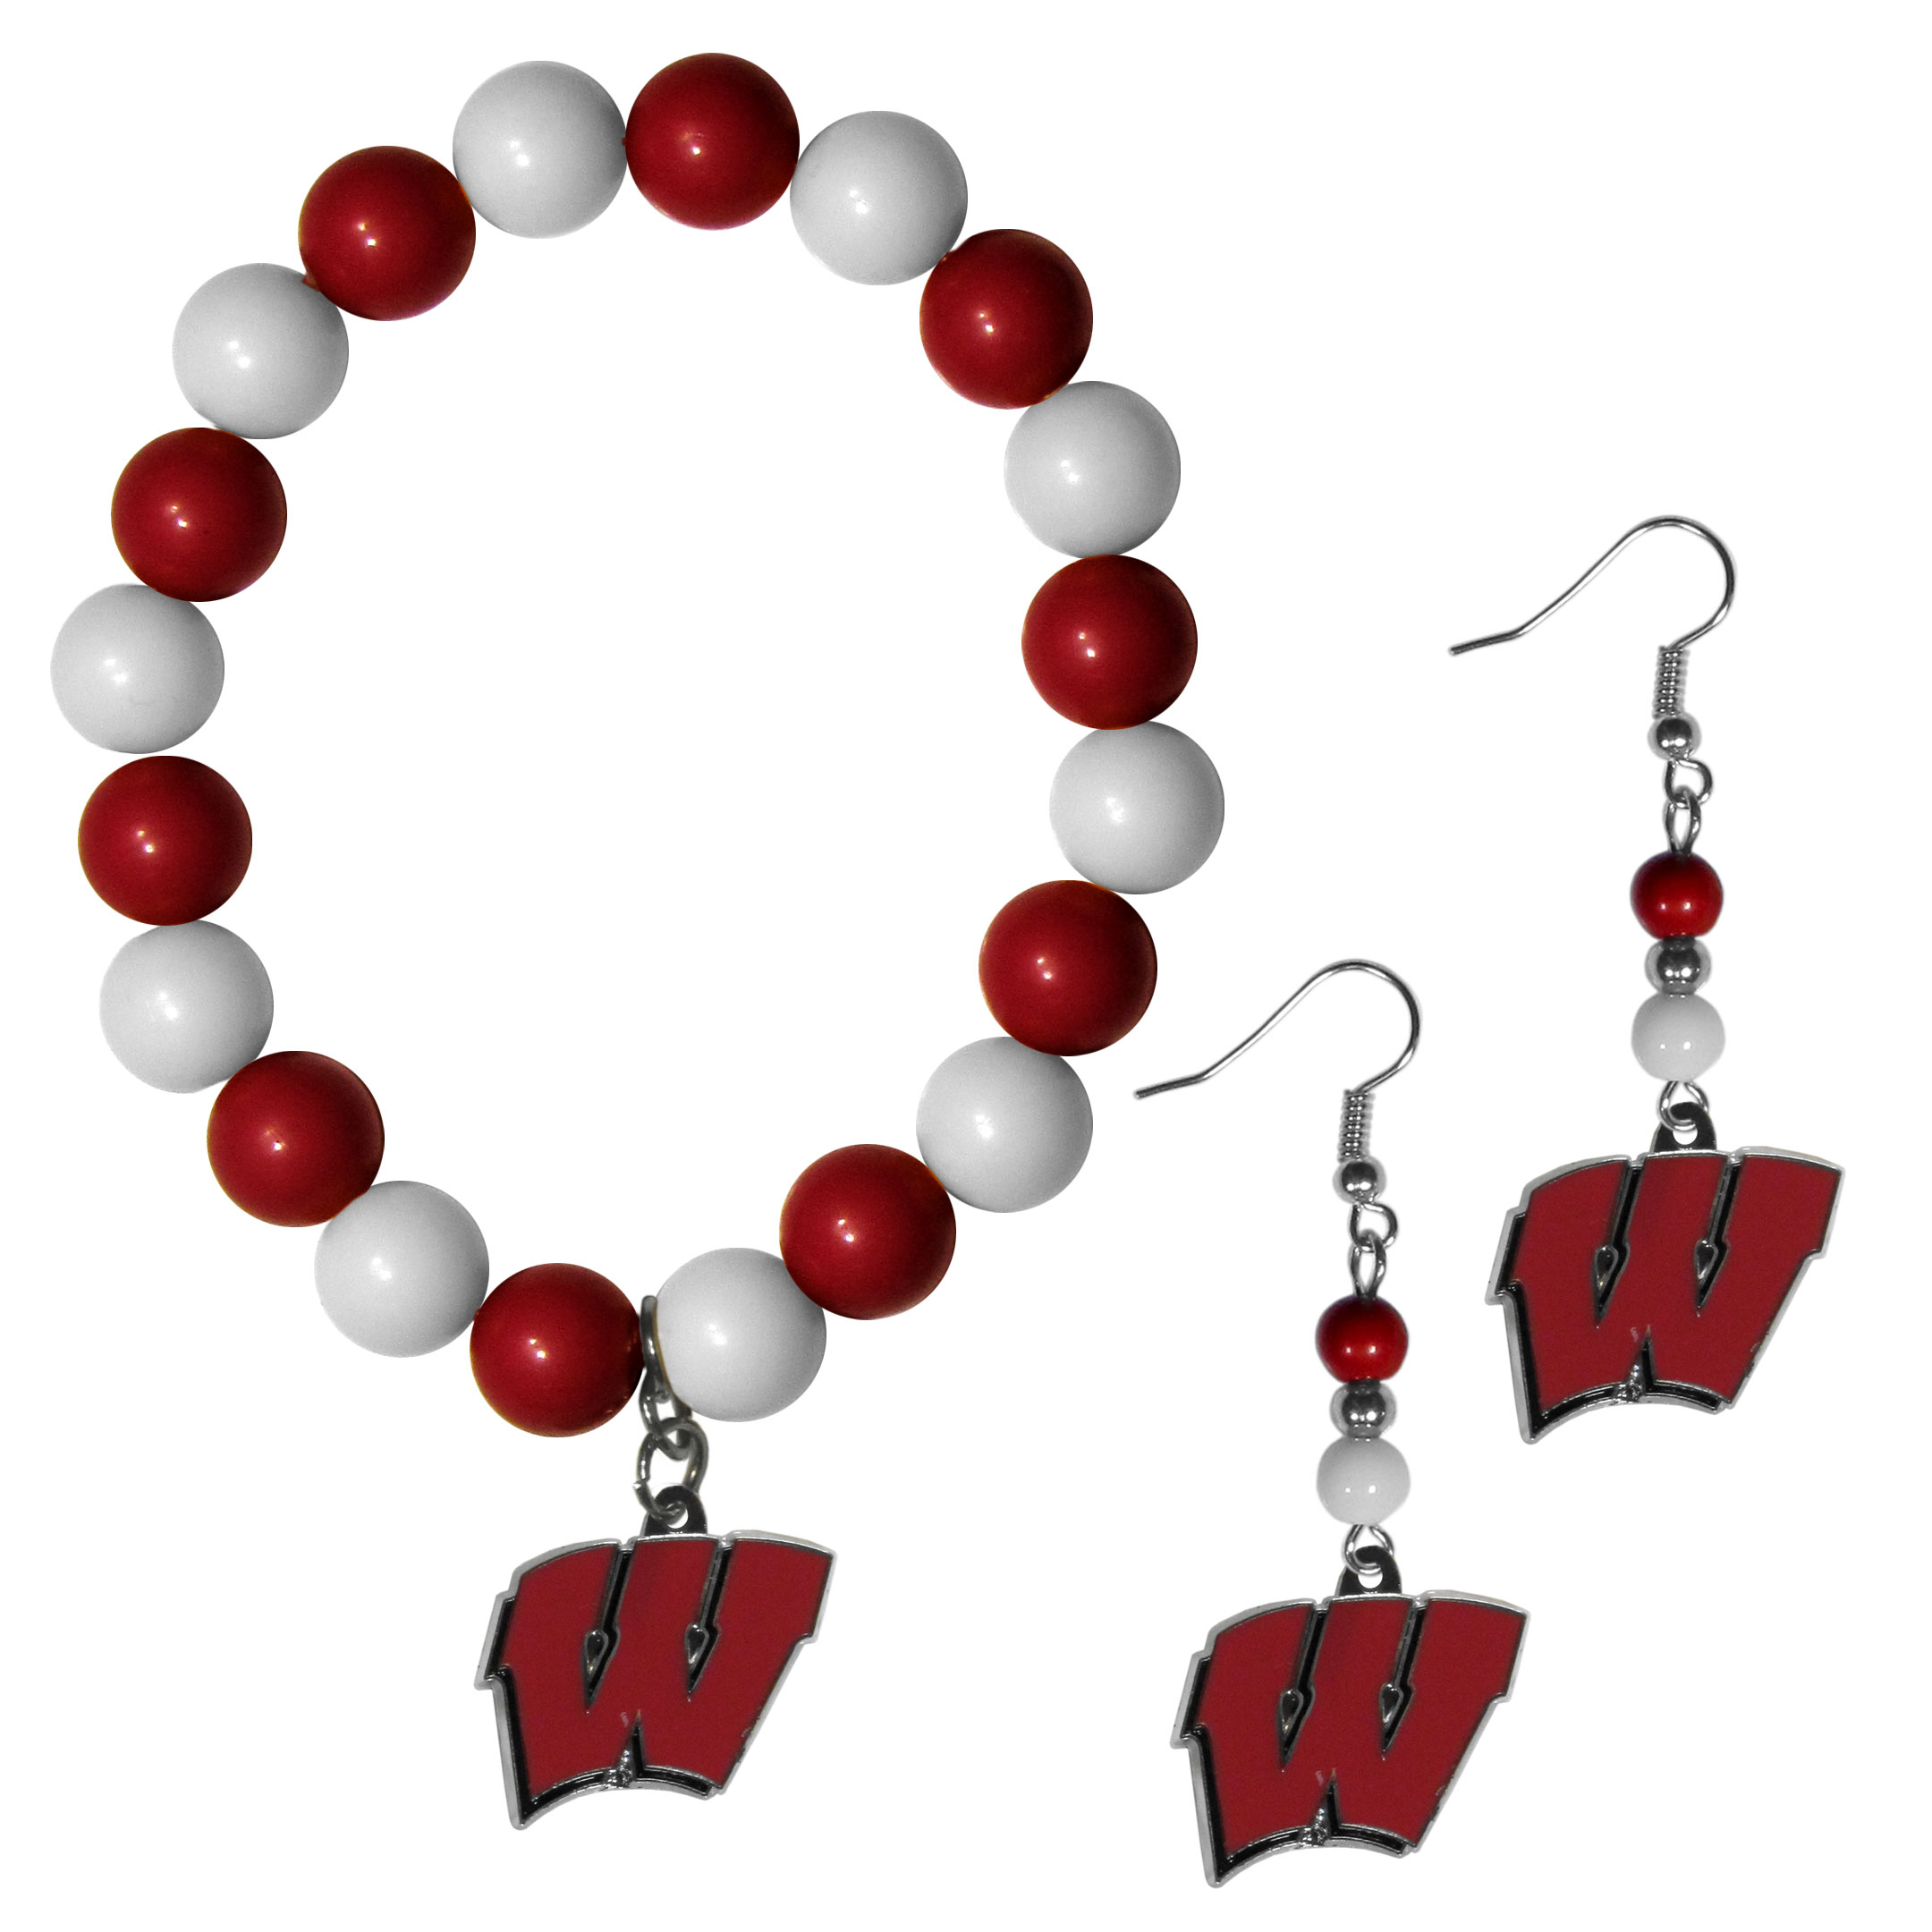 Wisconsin Badgers Fan Bead Earrings and Bracelet Set - This fun and colorful Wisconsin Badgers fan bead jewelry set is fun and casual with eye-catching beads in bright team colors. The fashionable dangle earrings feature a team colored beads that drop down to a carved and enameled charm. The stretch bracelet has larger matching beads that make a striking statement and have a matching team charm. These sassy yet sporty jewelry pieces make a perfect gift for any female fan. Spice up your game-day outfit with these fun colorful earrings and bracelet that are also cute enough for any day.